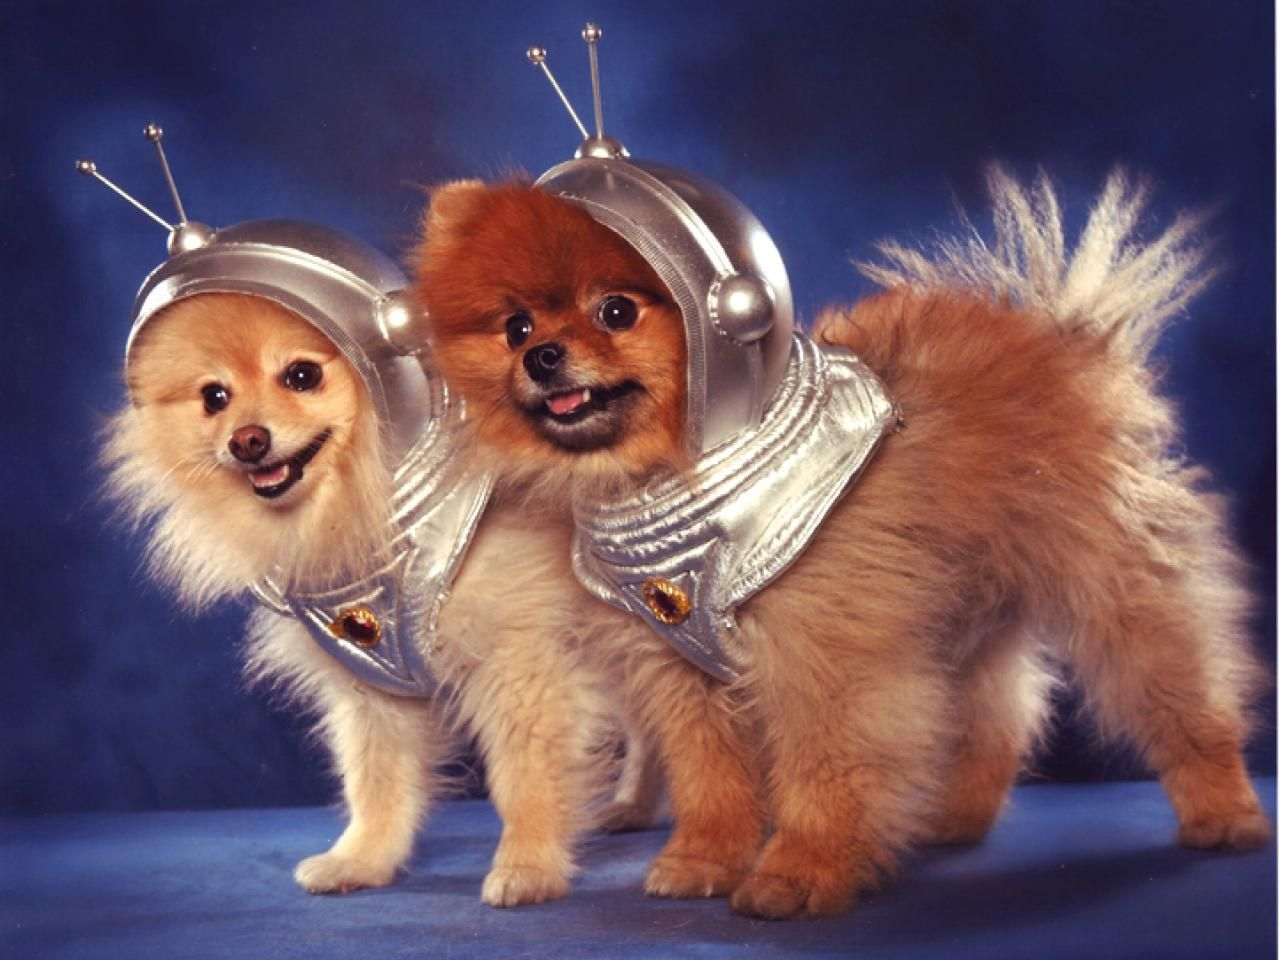 Don T Forget To Get Your Best Friend In On The Action When Constructing Your Pup S Costume Just B Handmade Halloween Costumes Dog Halloween Alien Dog Costume